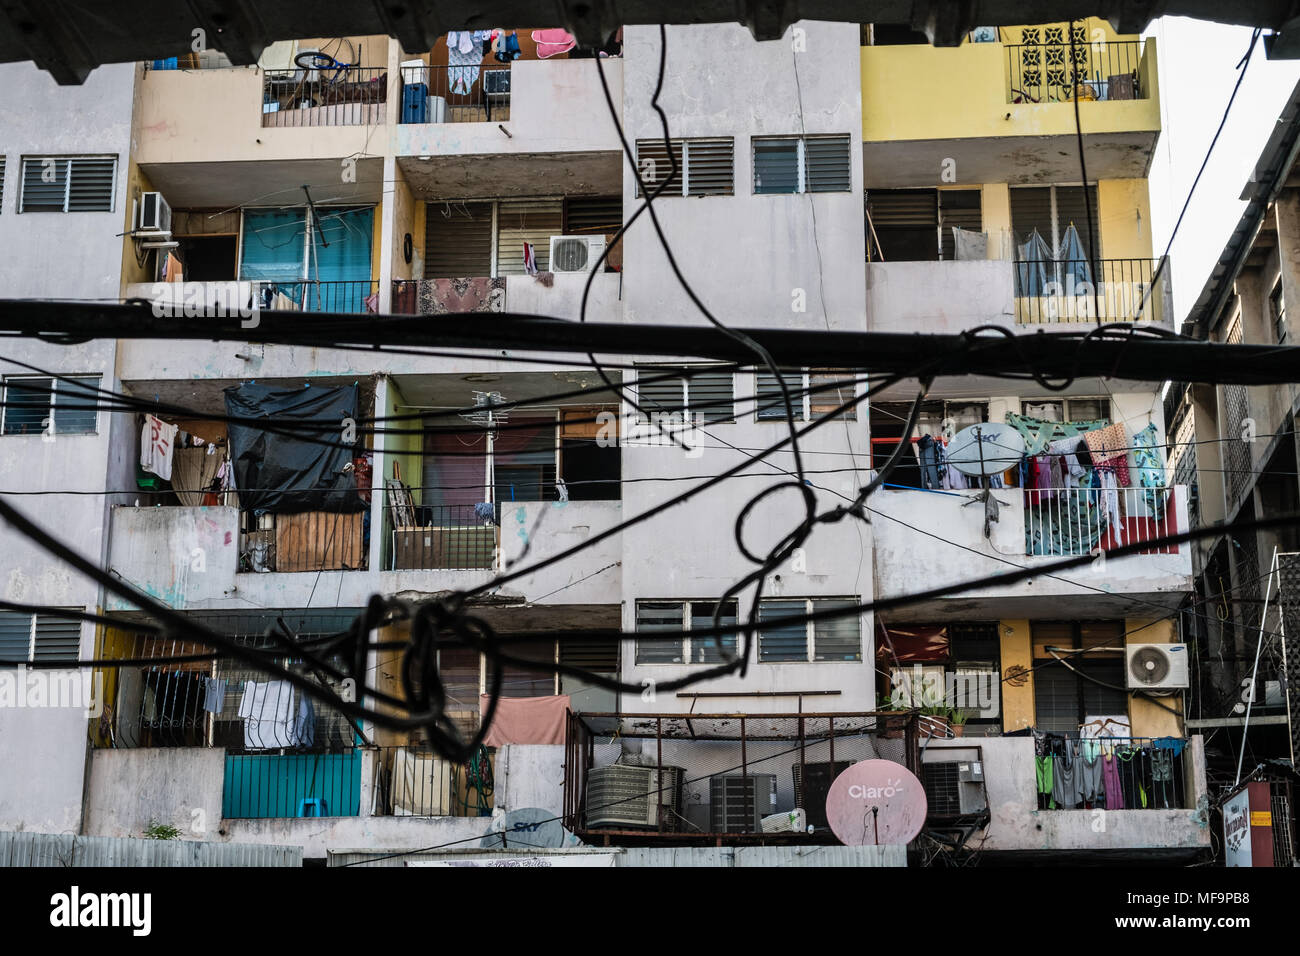 City Poor Neighborhood Stockfotos & City Poor Neighborhood Bilder ...